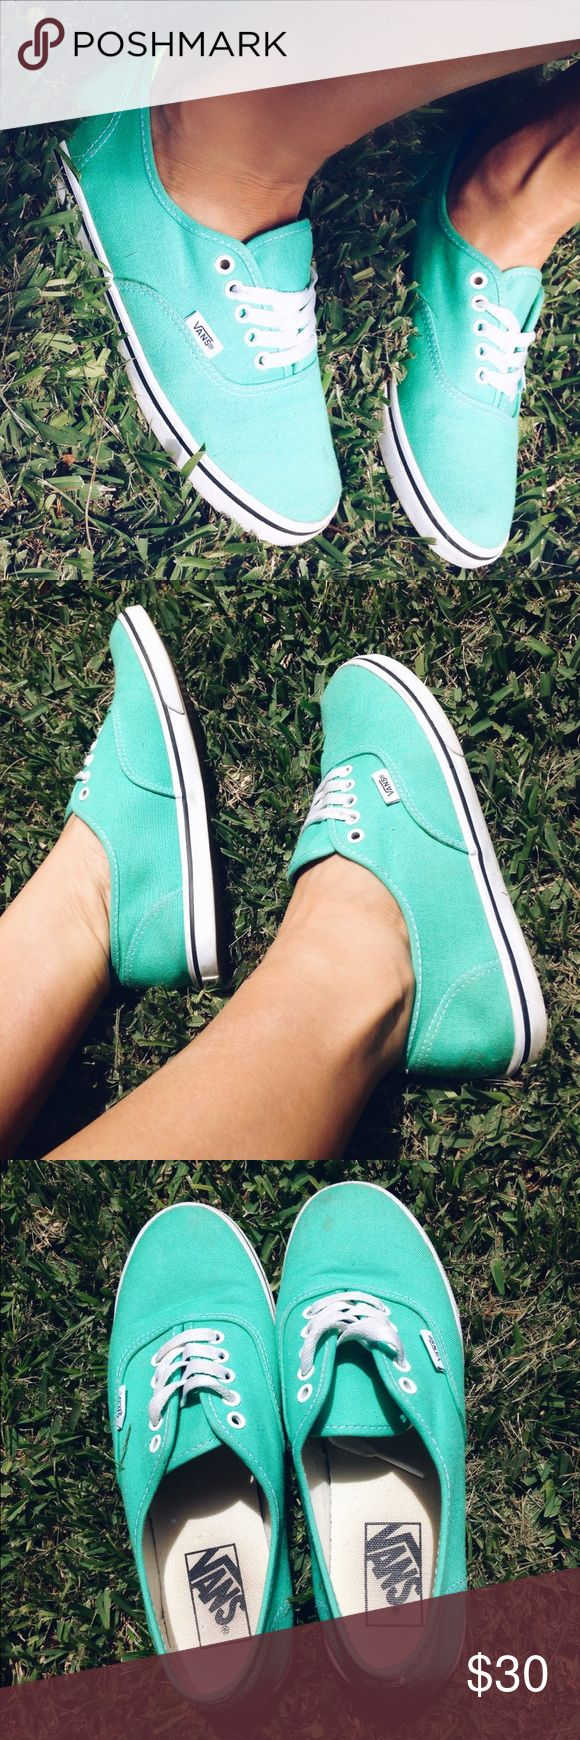 Teal vans.only worn a couple of times There is a small dirt spot on one of the toes that will come out with stain remover but I will wash them thoroughly before shipping. PRICE FINAL. NO OFFERS WILL BE ACCEPTED. Vans Shoes Sneakers